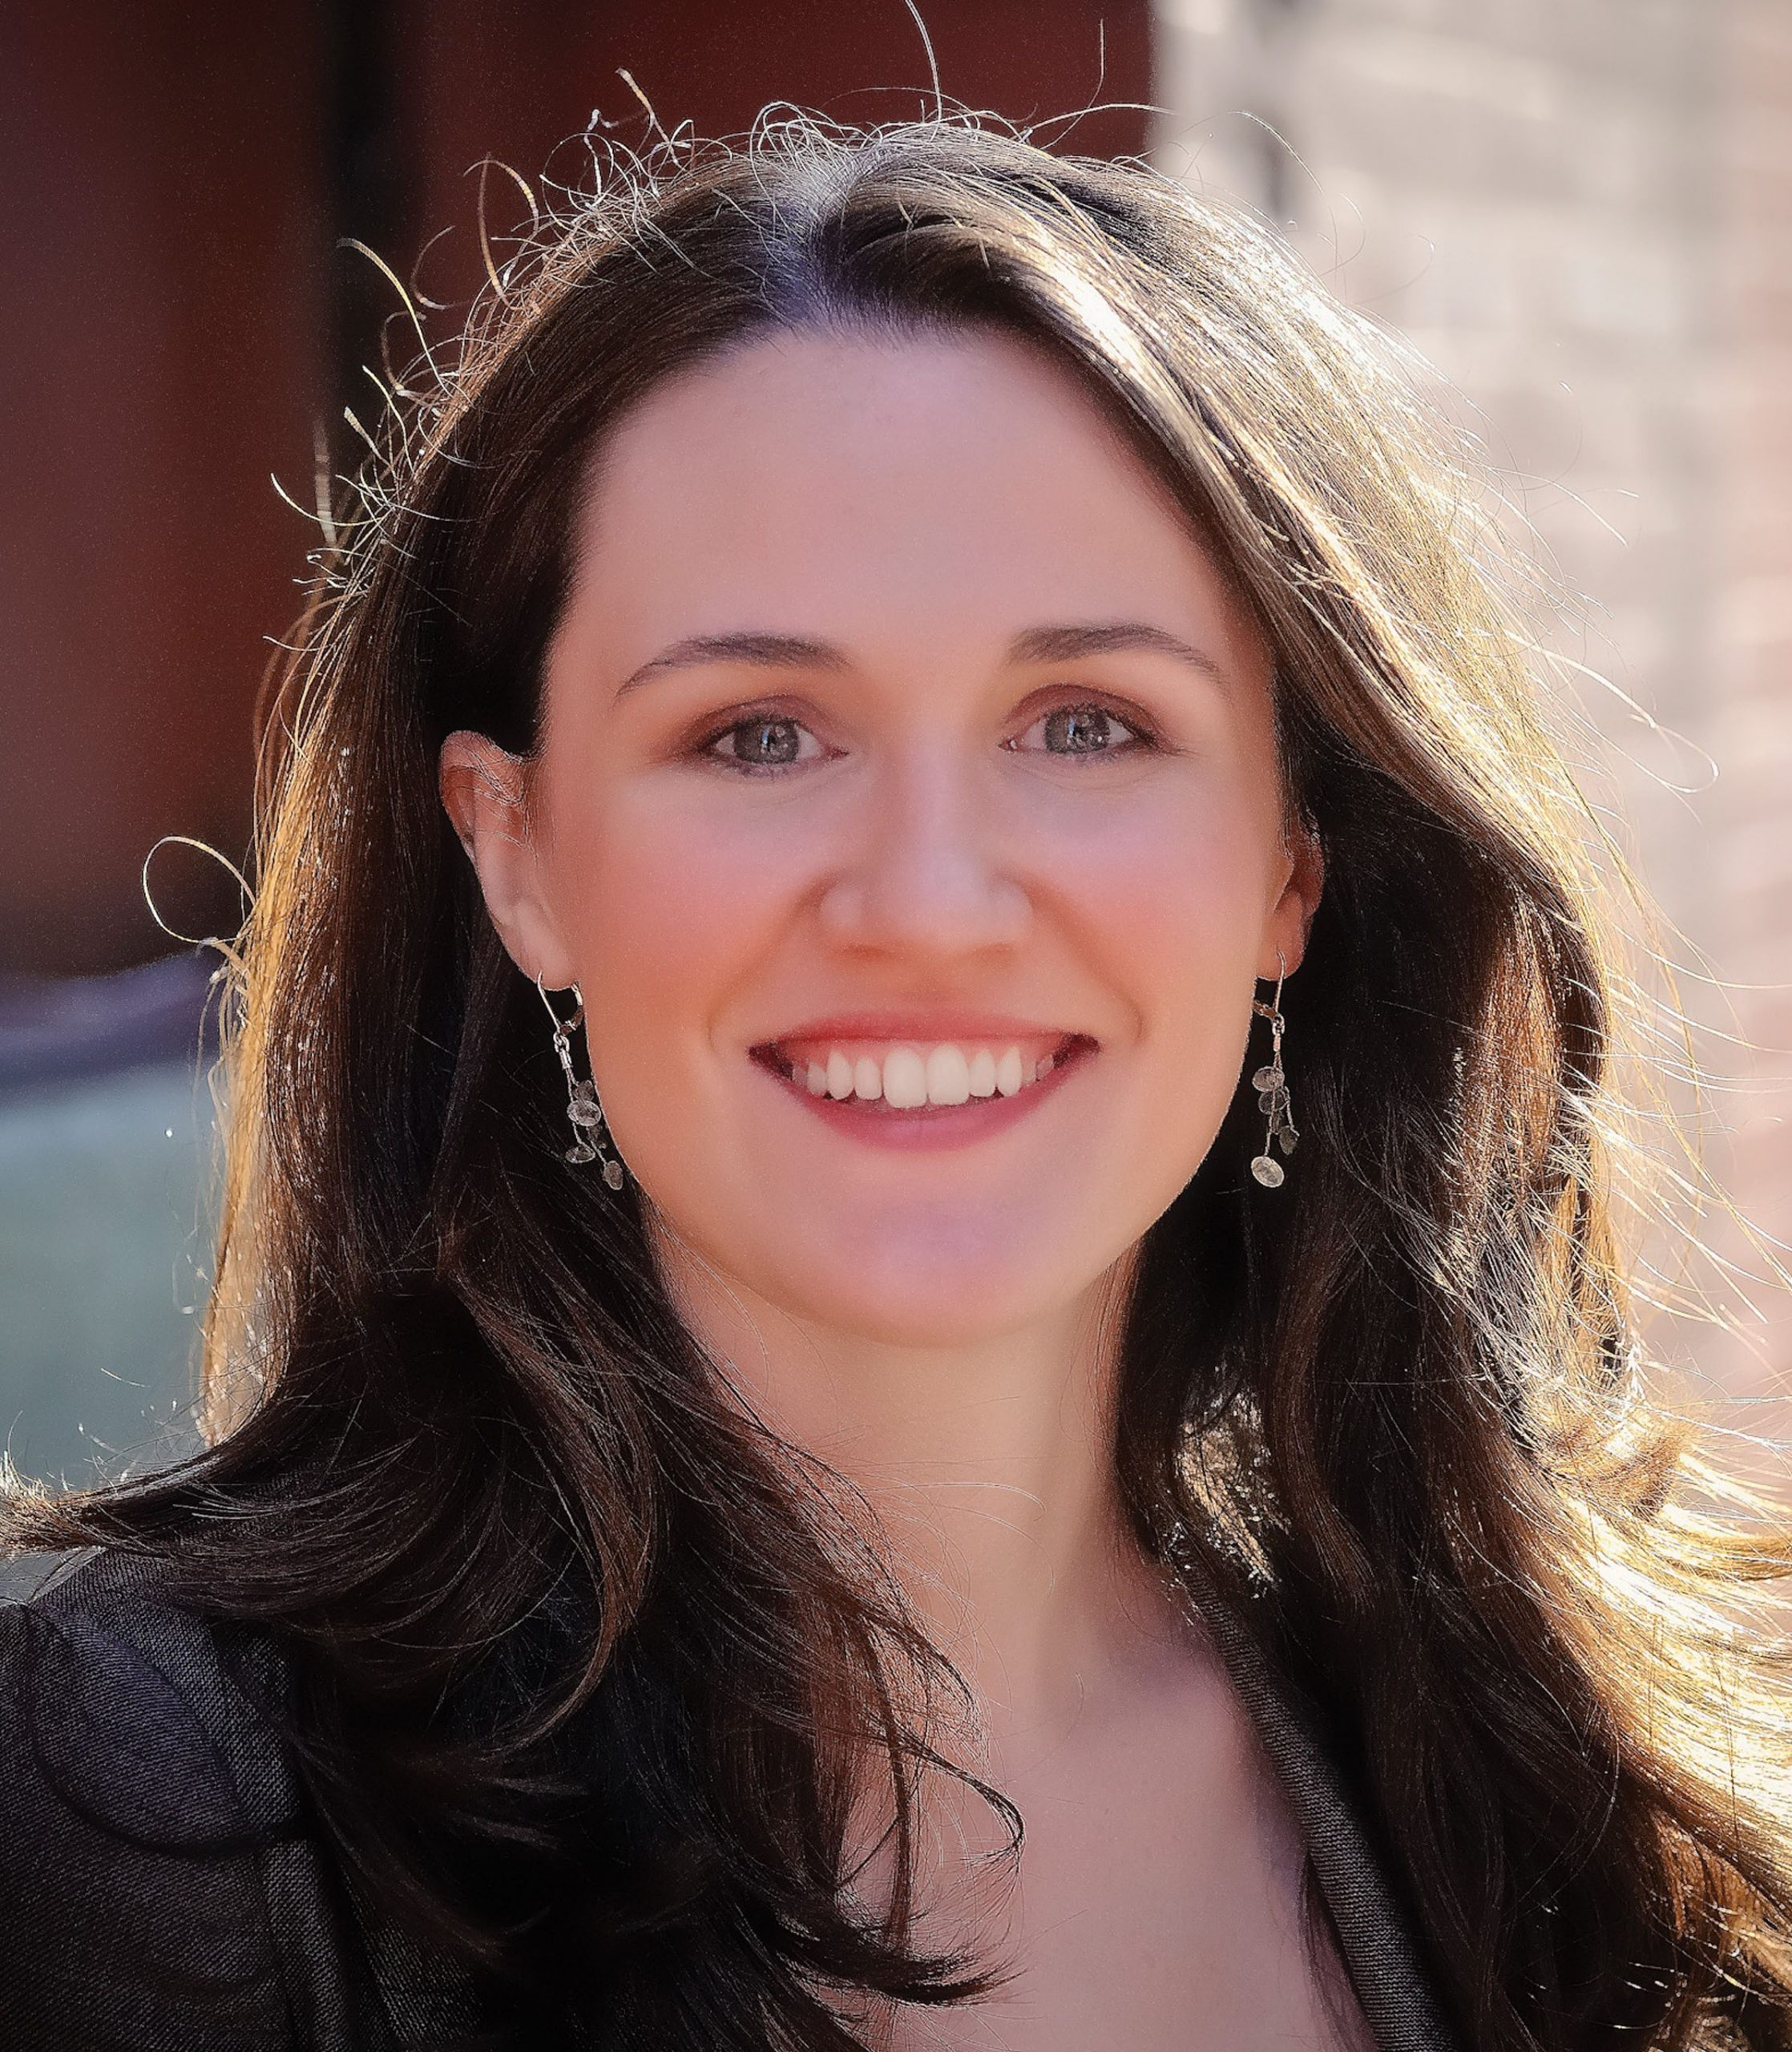 Liz Murray, who will speak at the University of Utah's 2013 Commencement Thurs. May 2, 2013.